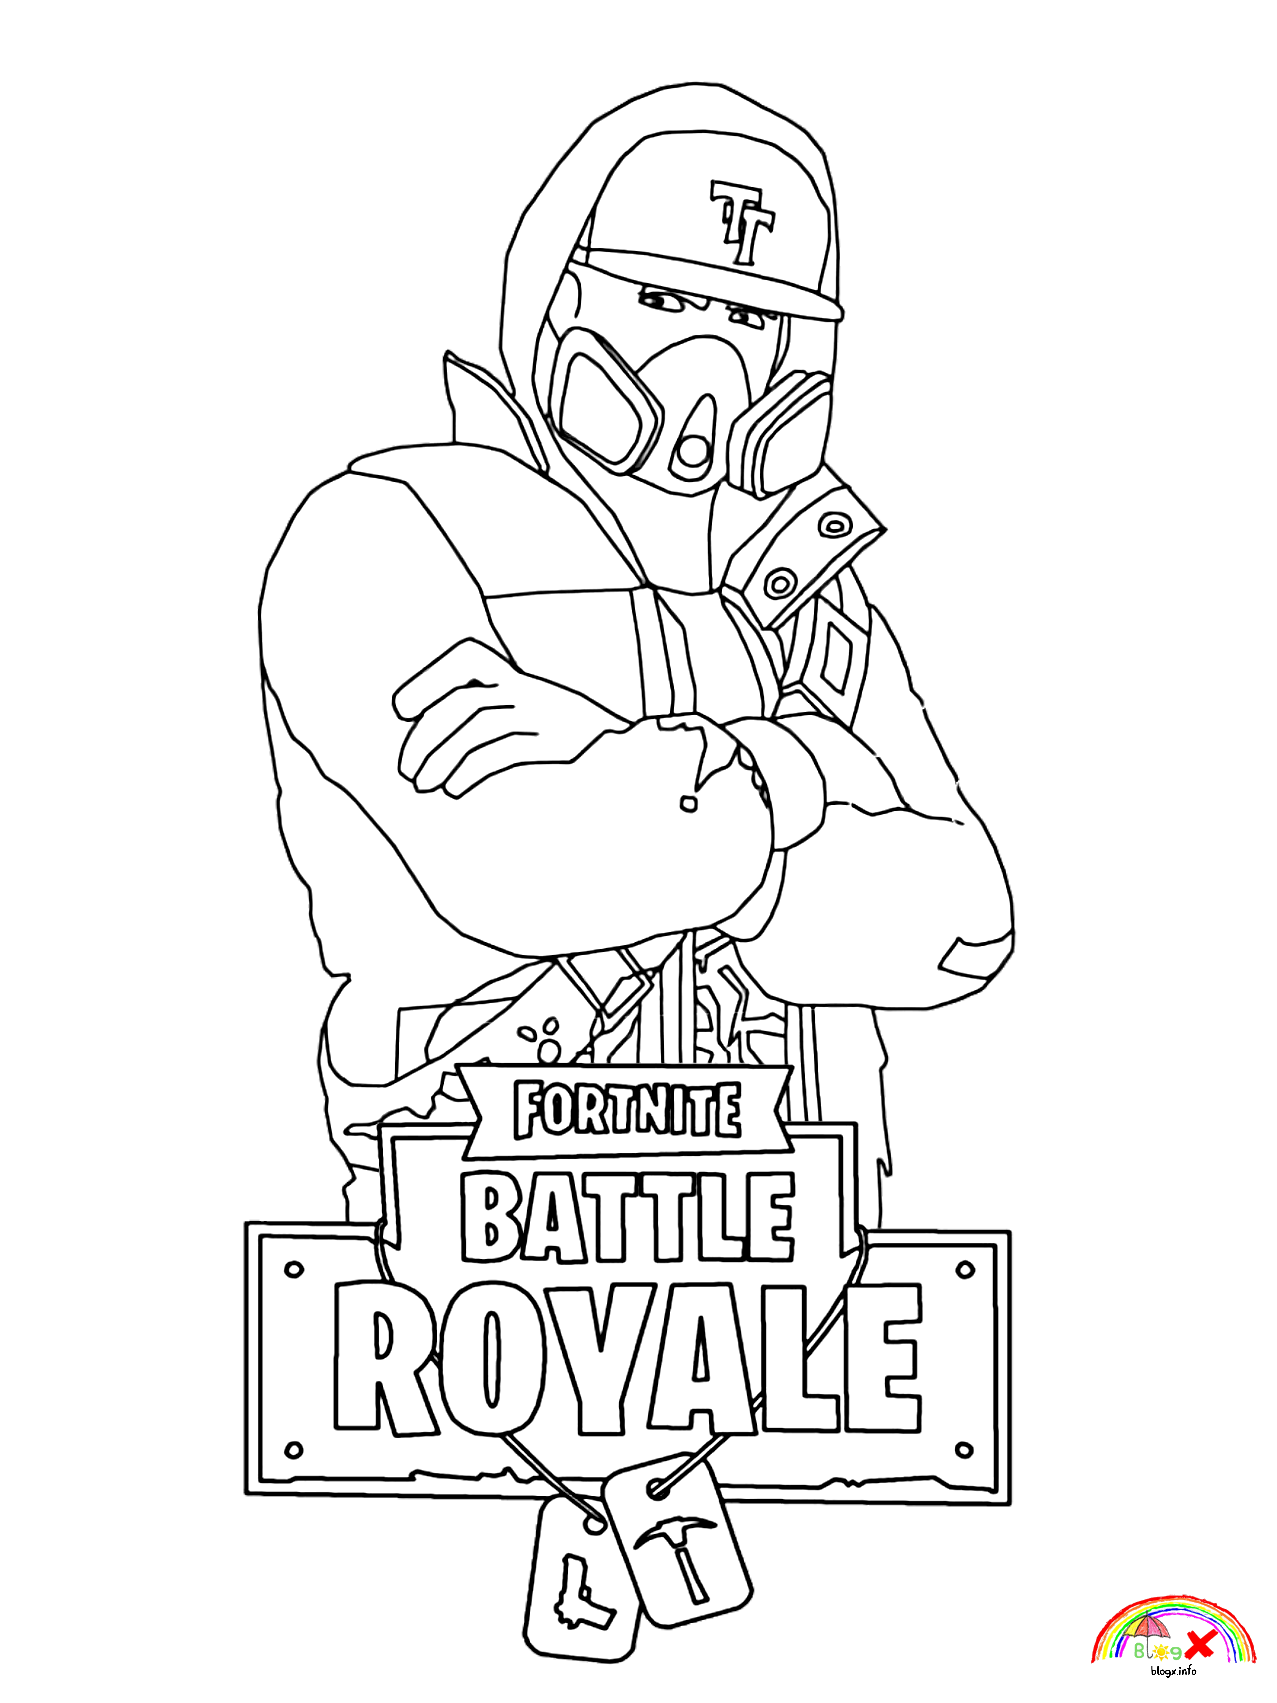 Fortnite Coloring Pages Print And Color Com Unicorn Coloring Pages Cartoon Coloring Pages Coloring Pages